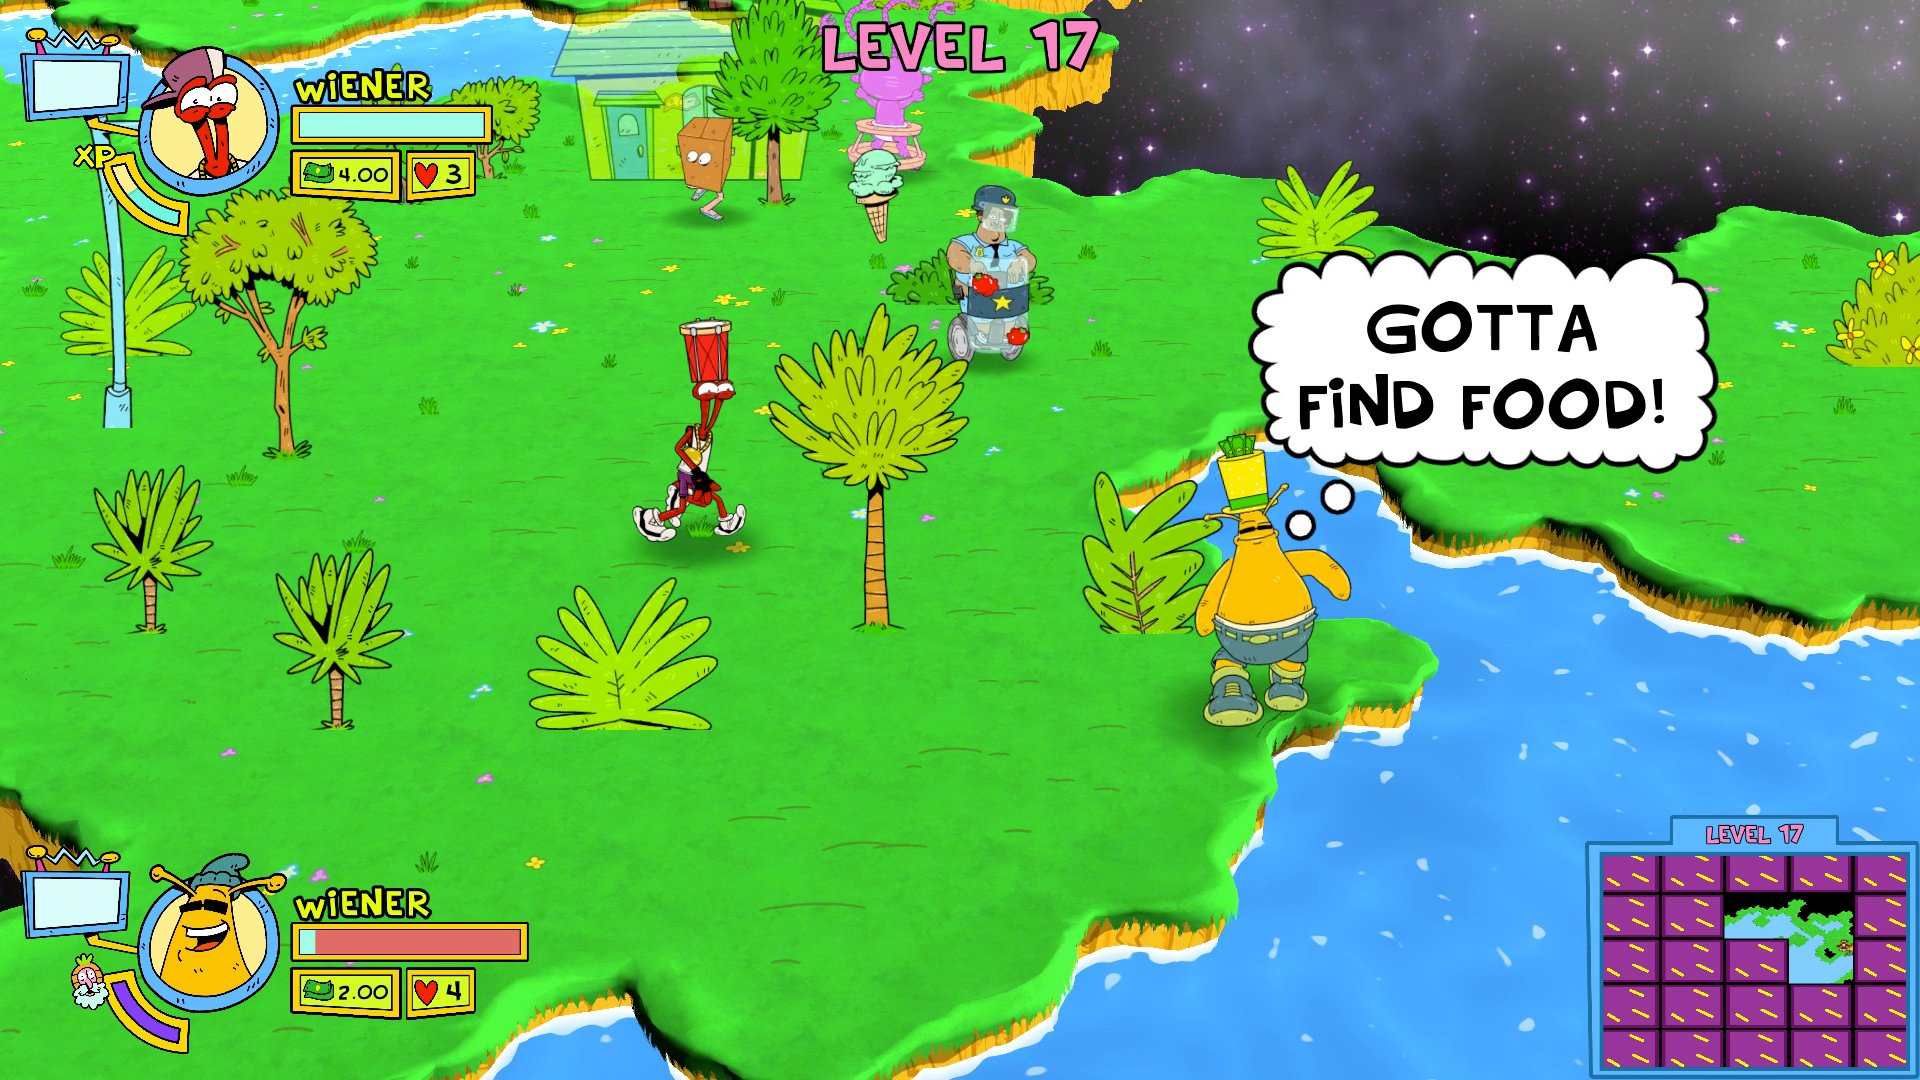 Next spring is gonna be super funky as ToeJam & Earl blasts off on March 1 screenshot